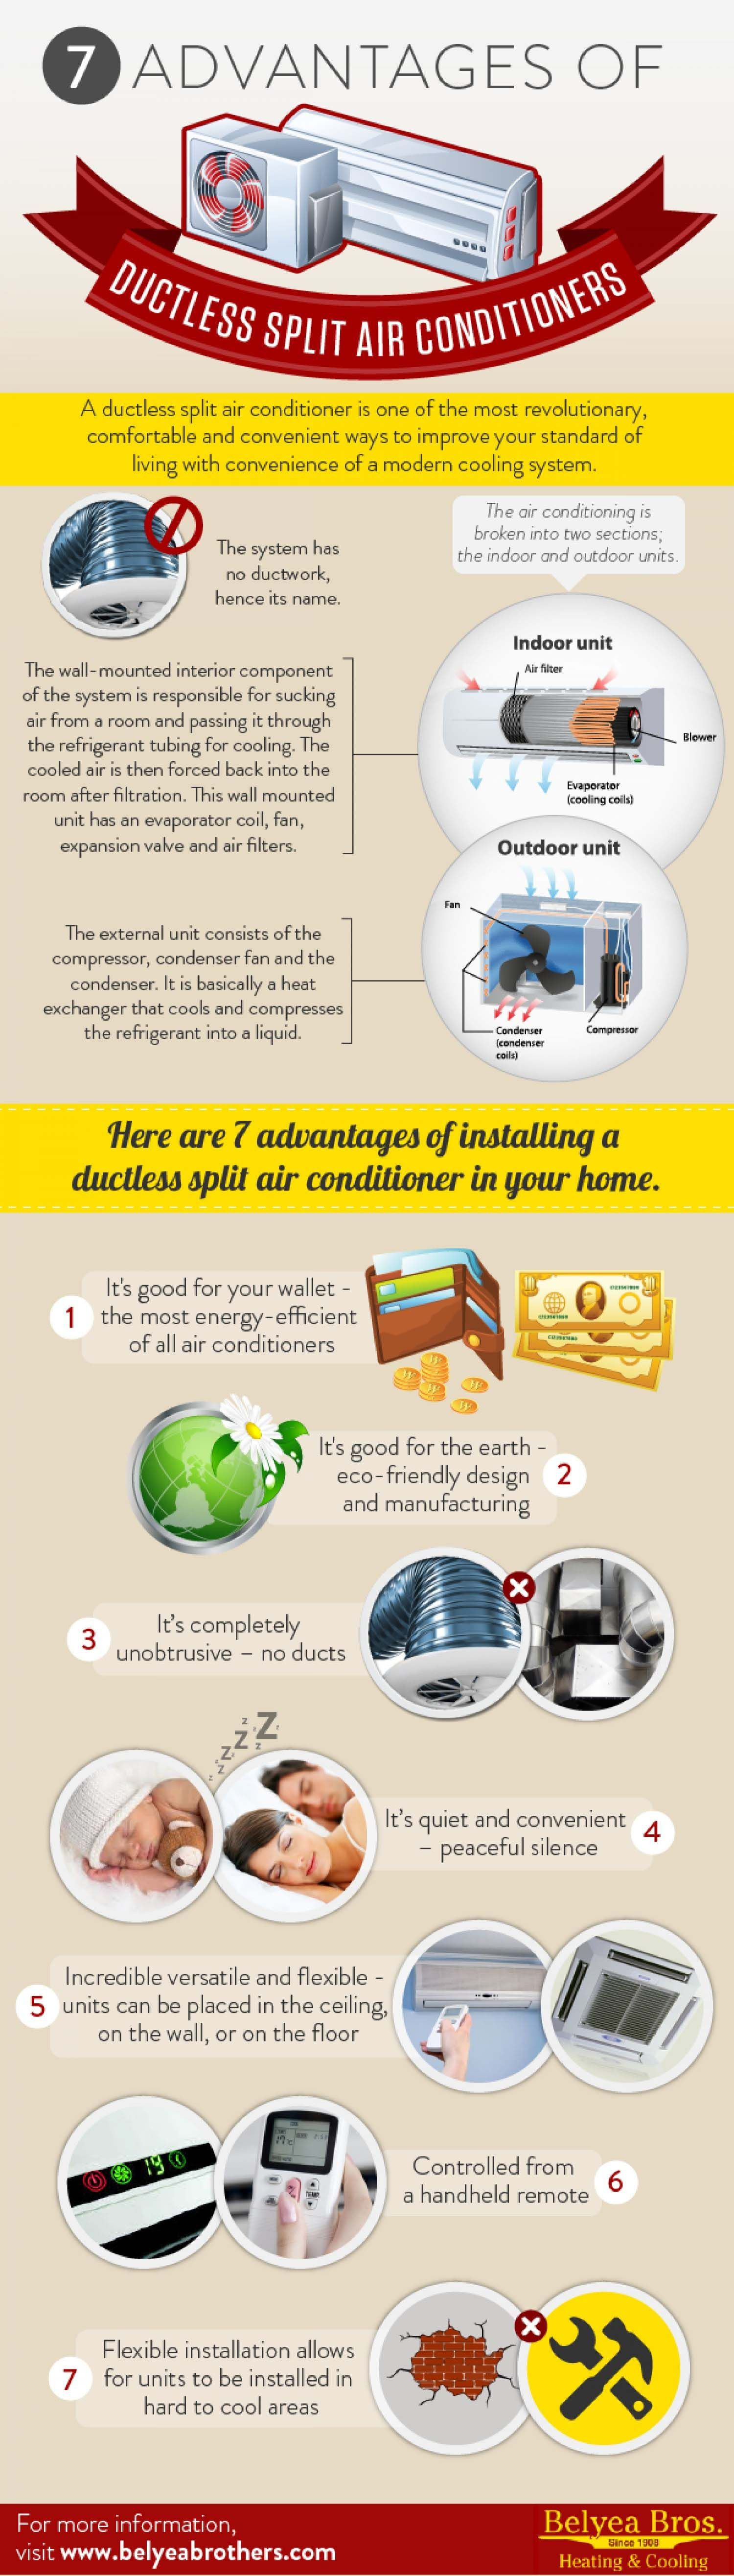 Infographic 7 Advantages Of Ductless Split Air Conditioners